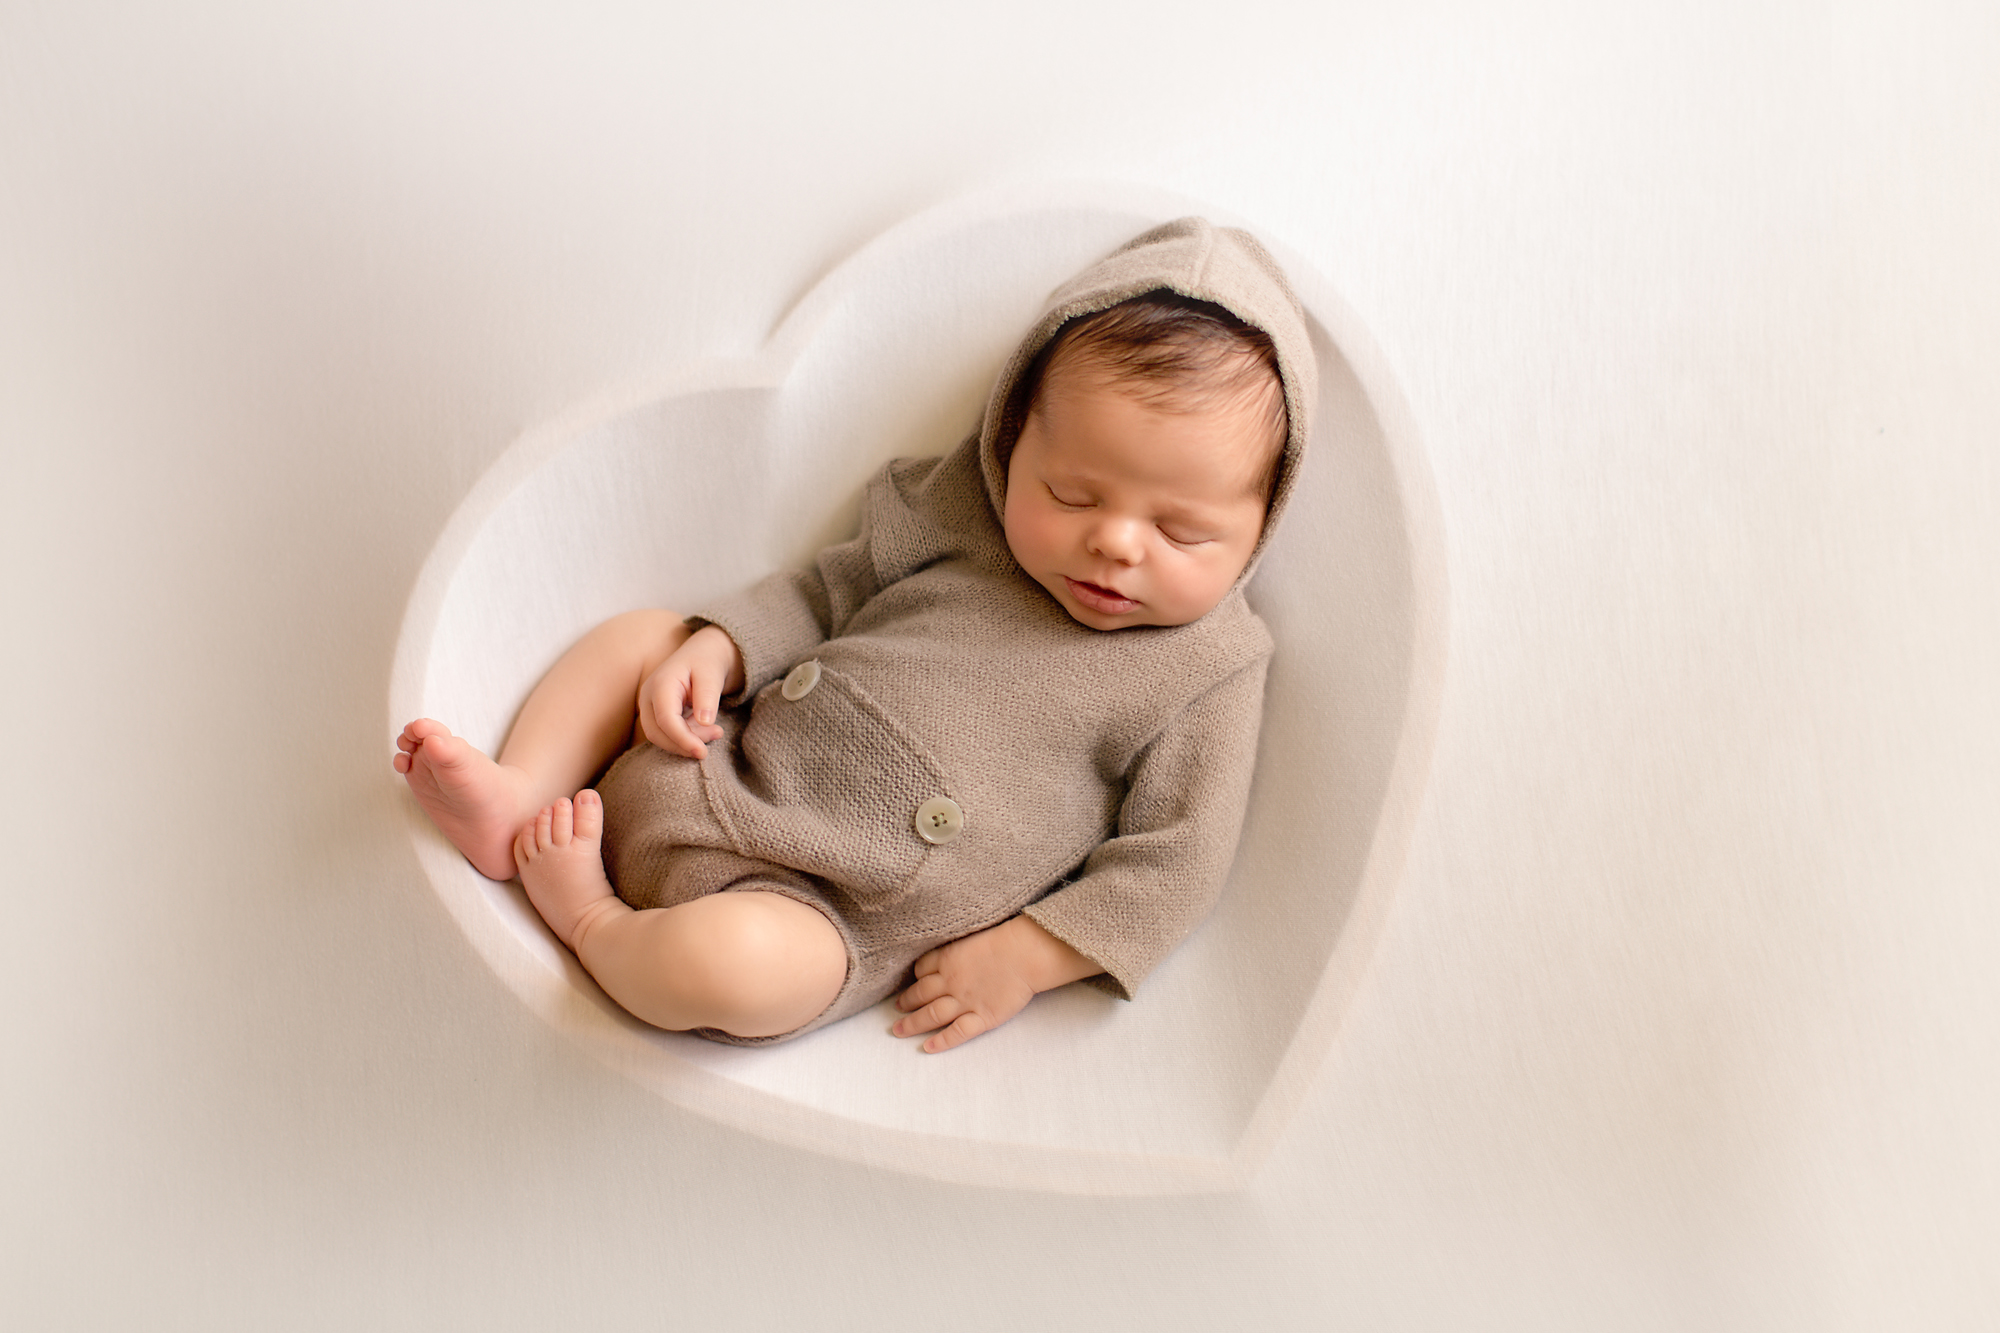 Newborn baby boy photoshoot ideas. Calgary and Airdrie newborn baby photographer - Milashka Photography. Baby boy is posed in a heart bowl.